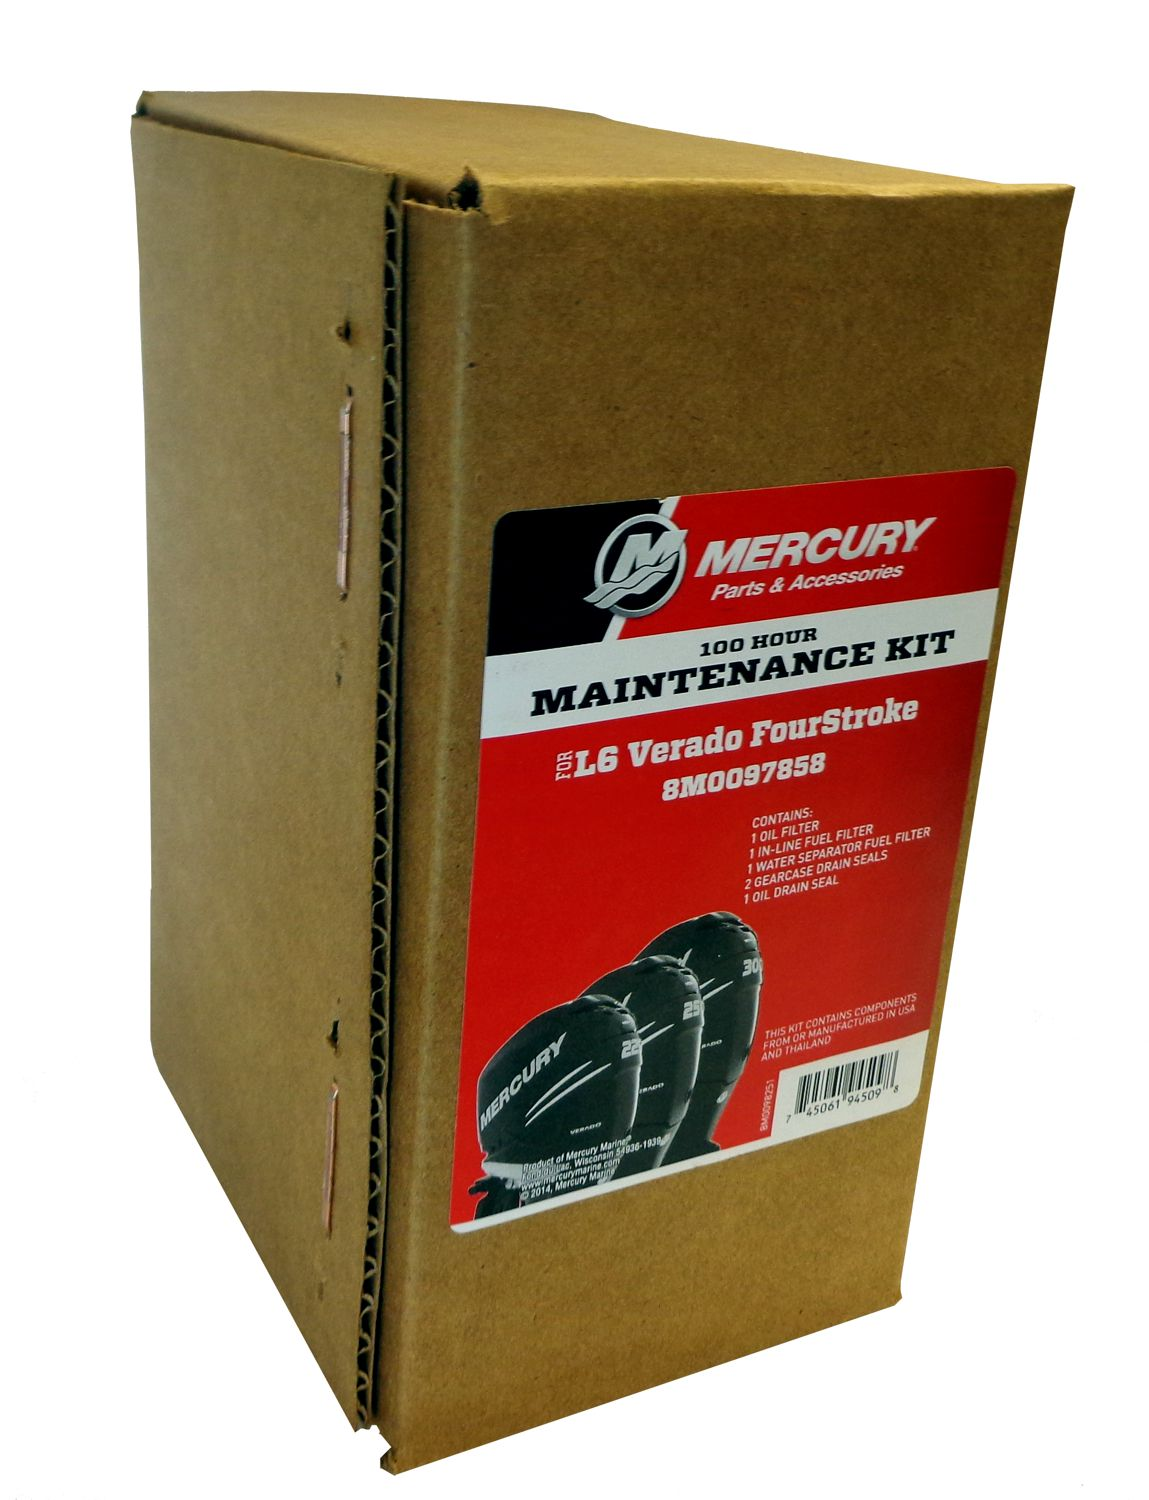 hight resolution of oem mercury 100 hour maintenance kit for l6 verado fourstroke outboard 8m0097858 walmart com